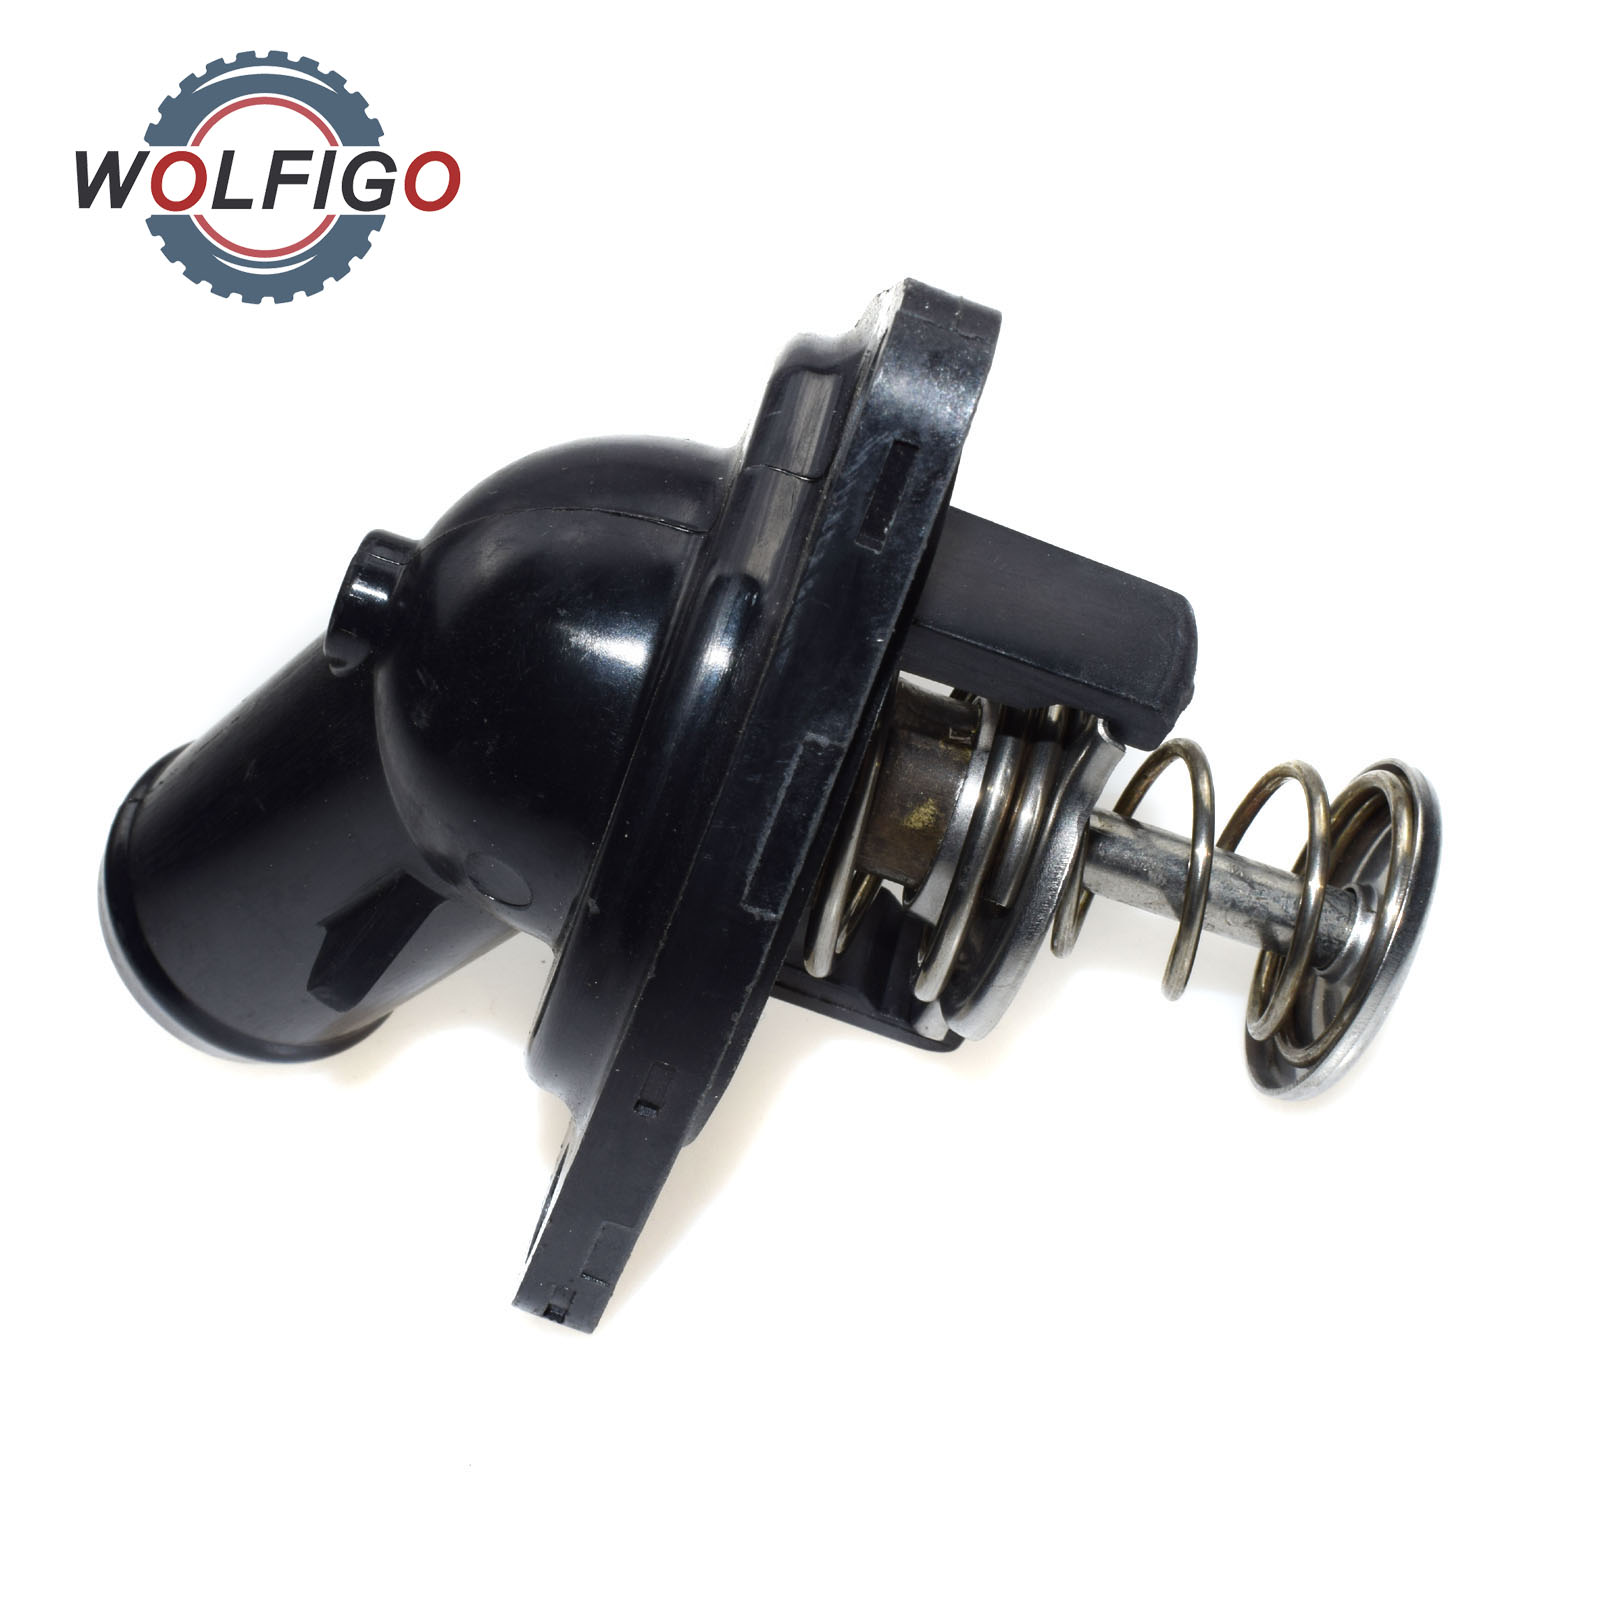 WOLFIGO Thermostat Assembly For Acura RDX RSX Honda CRV CR